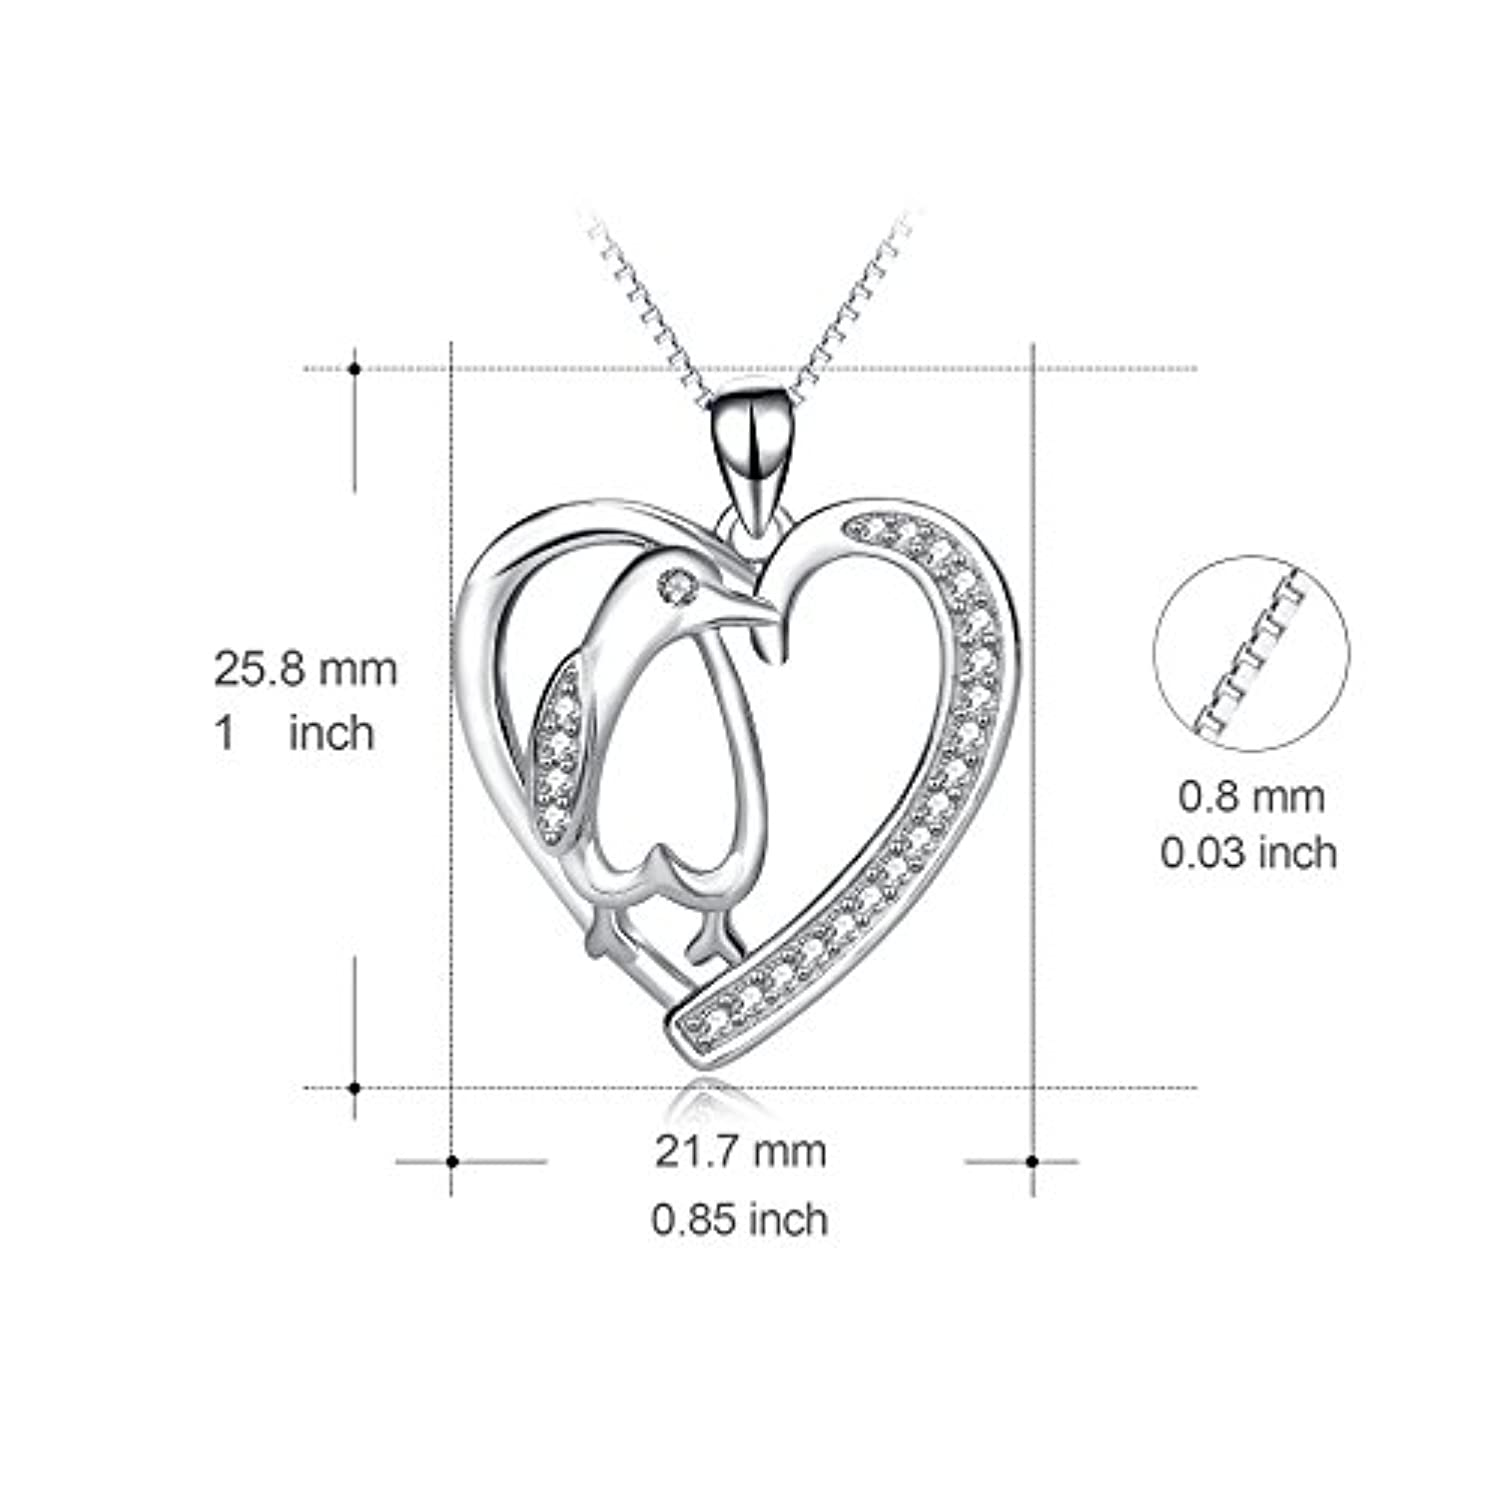 Angel caller Penguin Necklace Sterling Silver Cubic Zirconia Heart Shape Penguin Gifts for Women Girls, 18